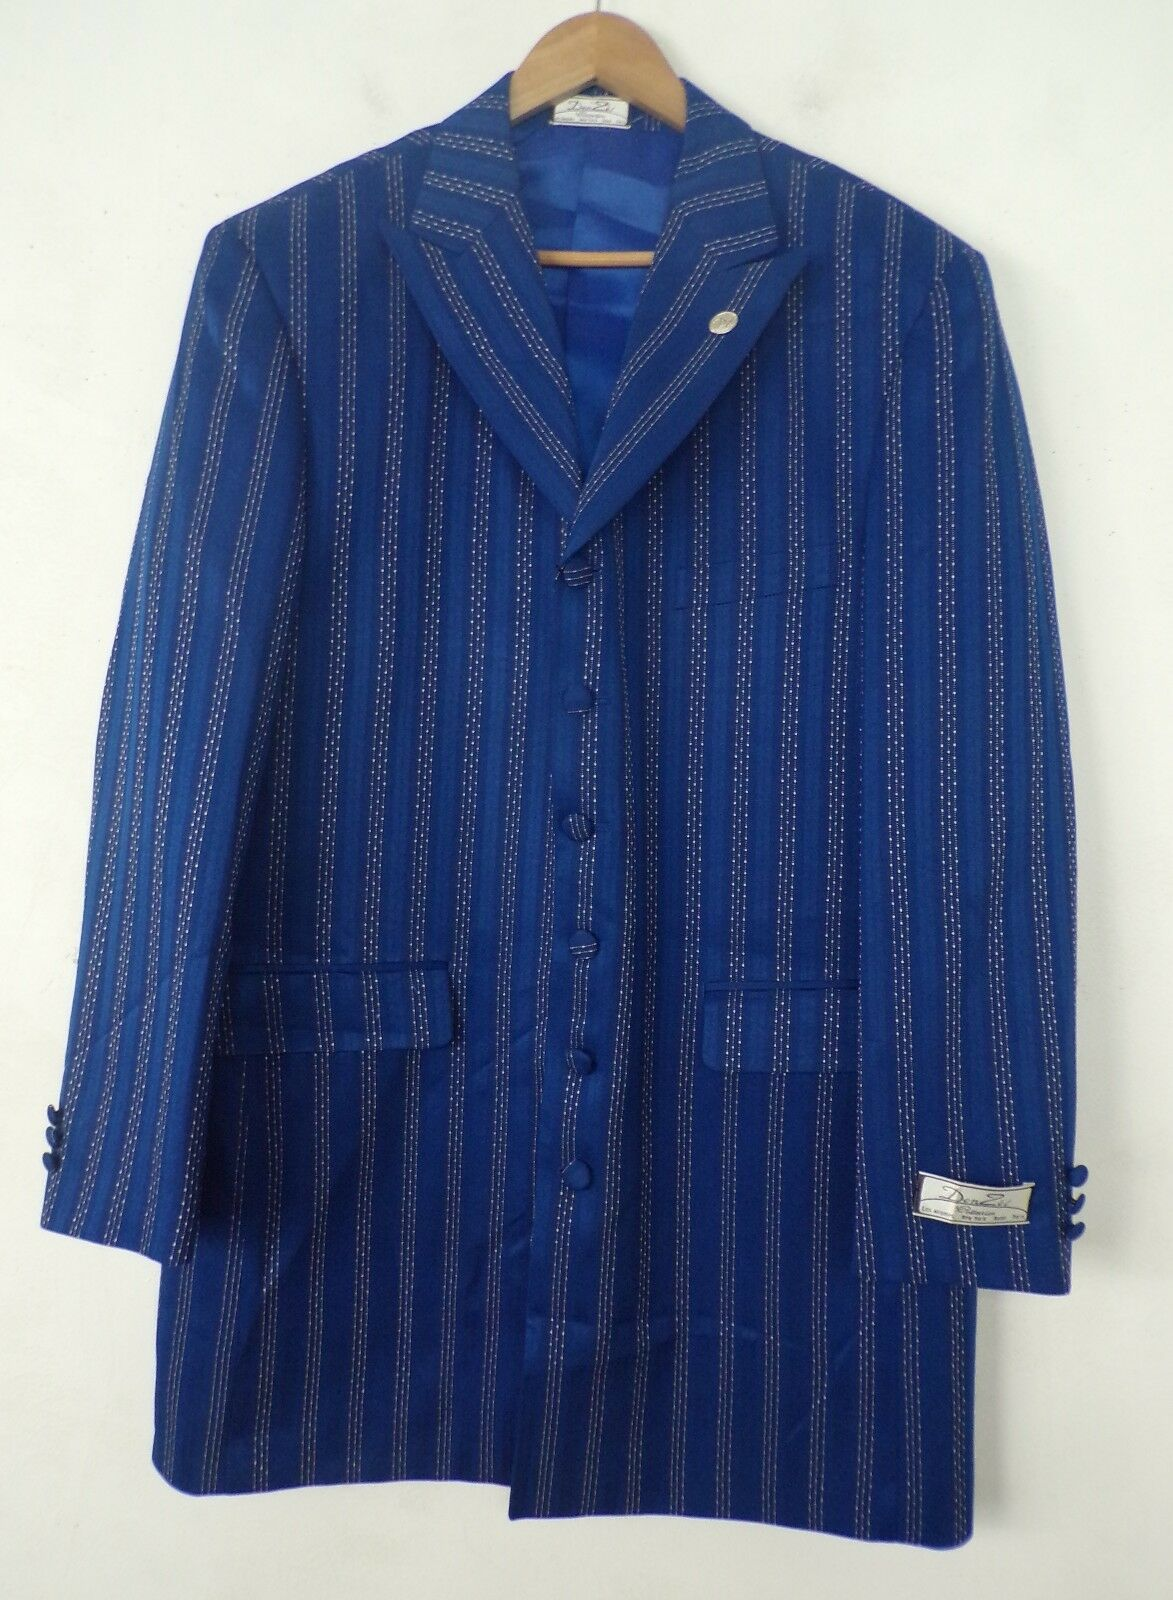 NWT DEN ZEL COLLECTION Mens bluee & White Striped Blazer Sport Coat 42R RV